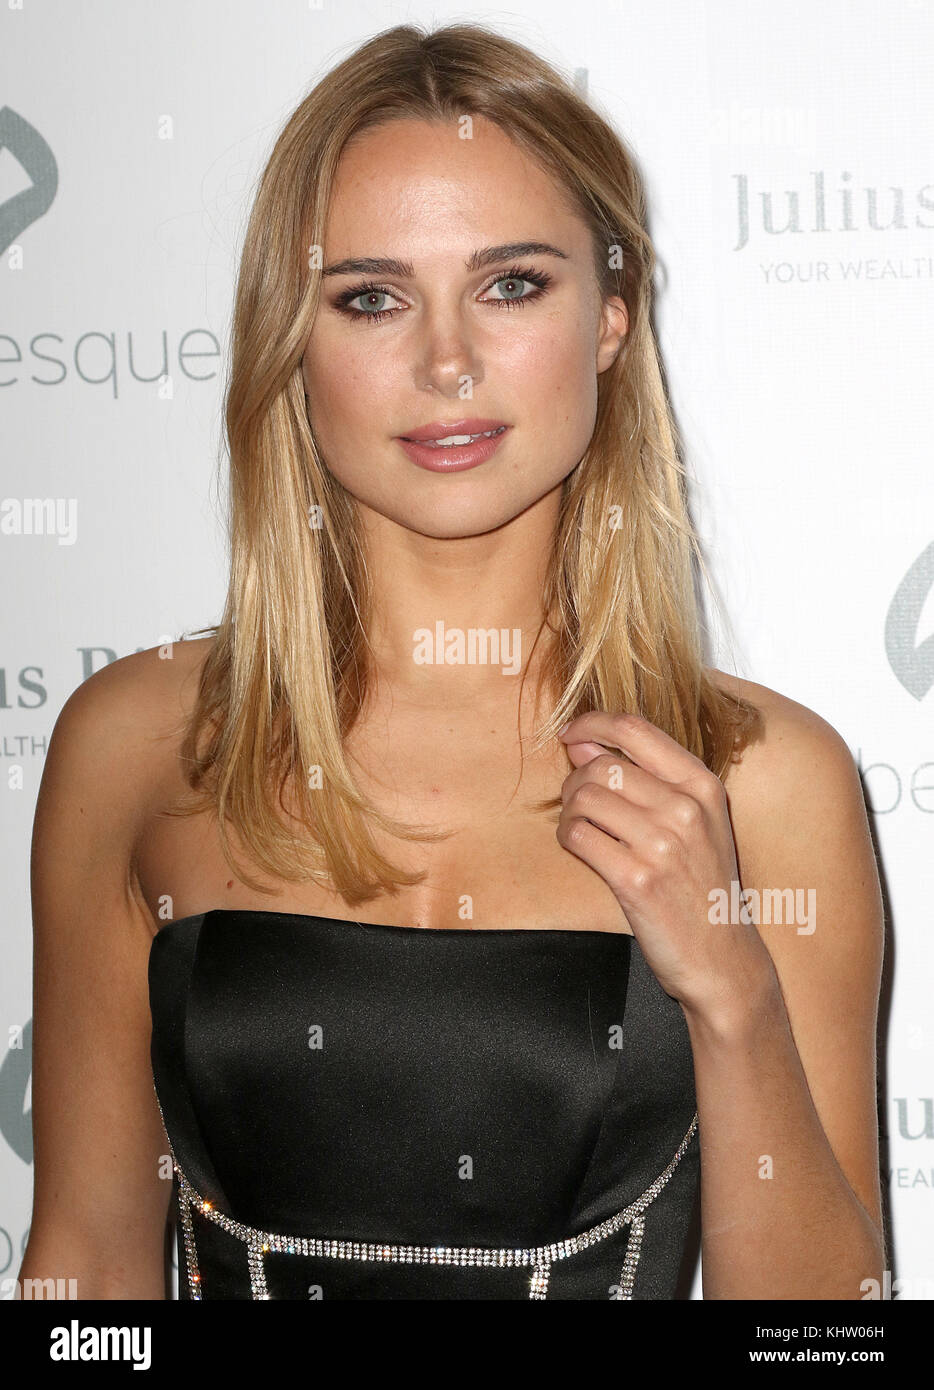 Nov 17, 2017 - Kimberley Garner attending Chain Of Hope Gala Ball 2007, Grosvenor House in London, England, UK - Stock Image